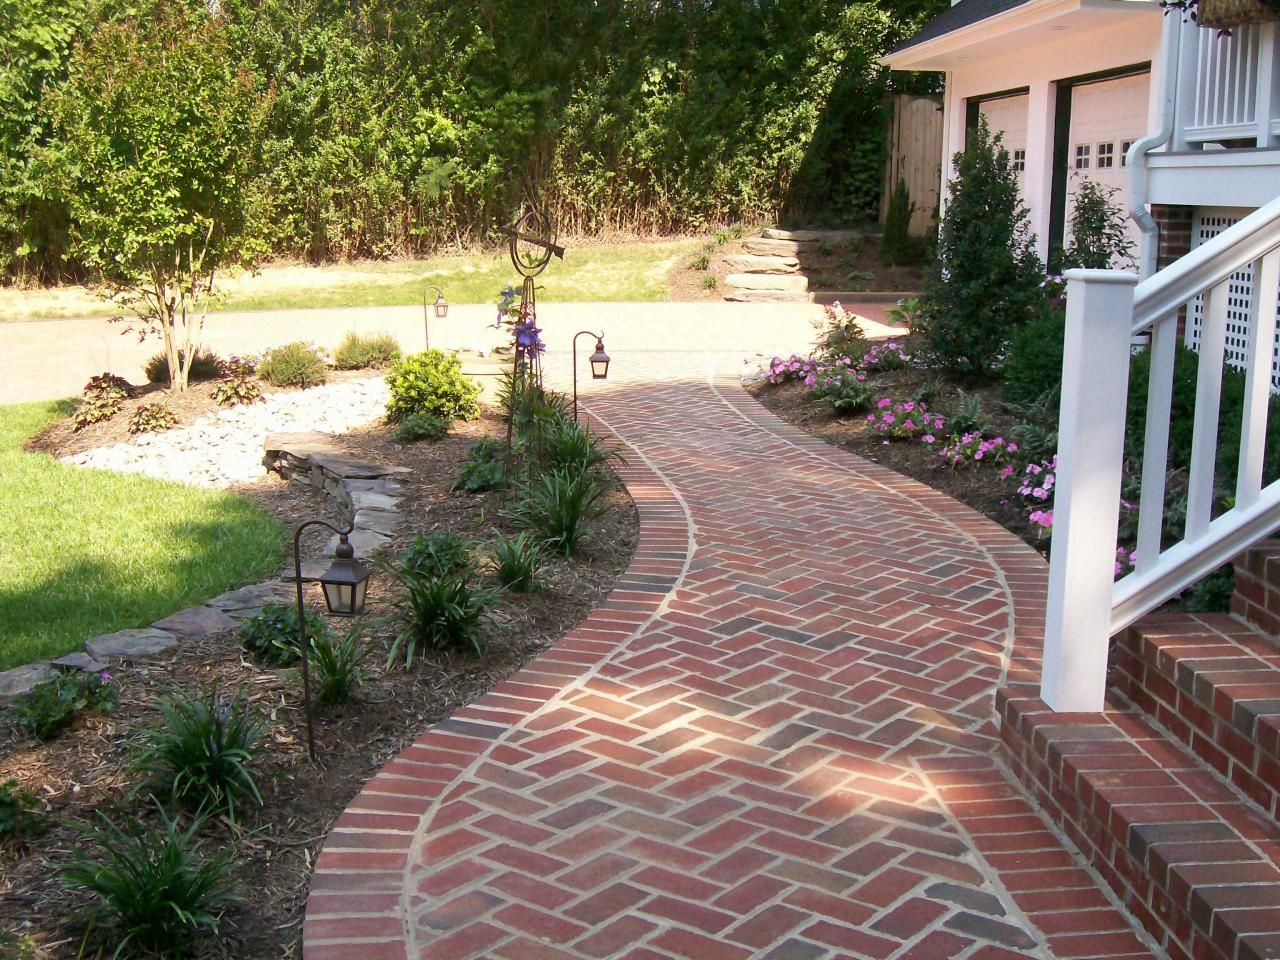 best images about walkways on pinterest denver soldiers and walkway designs for homes